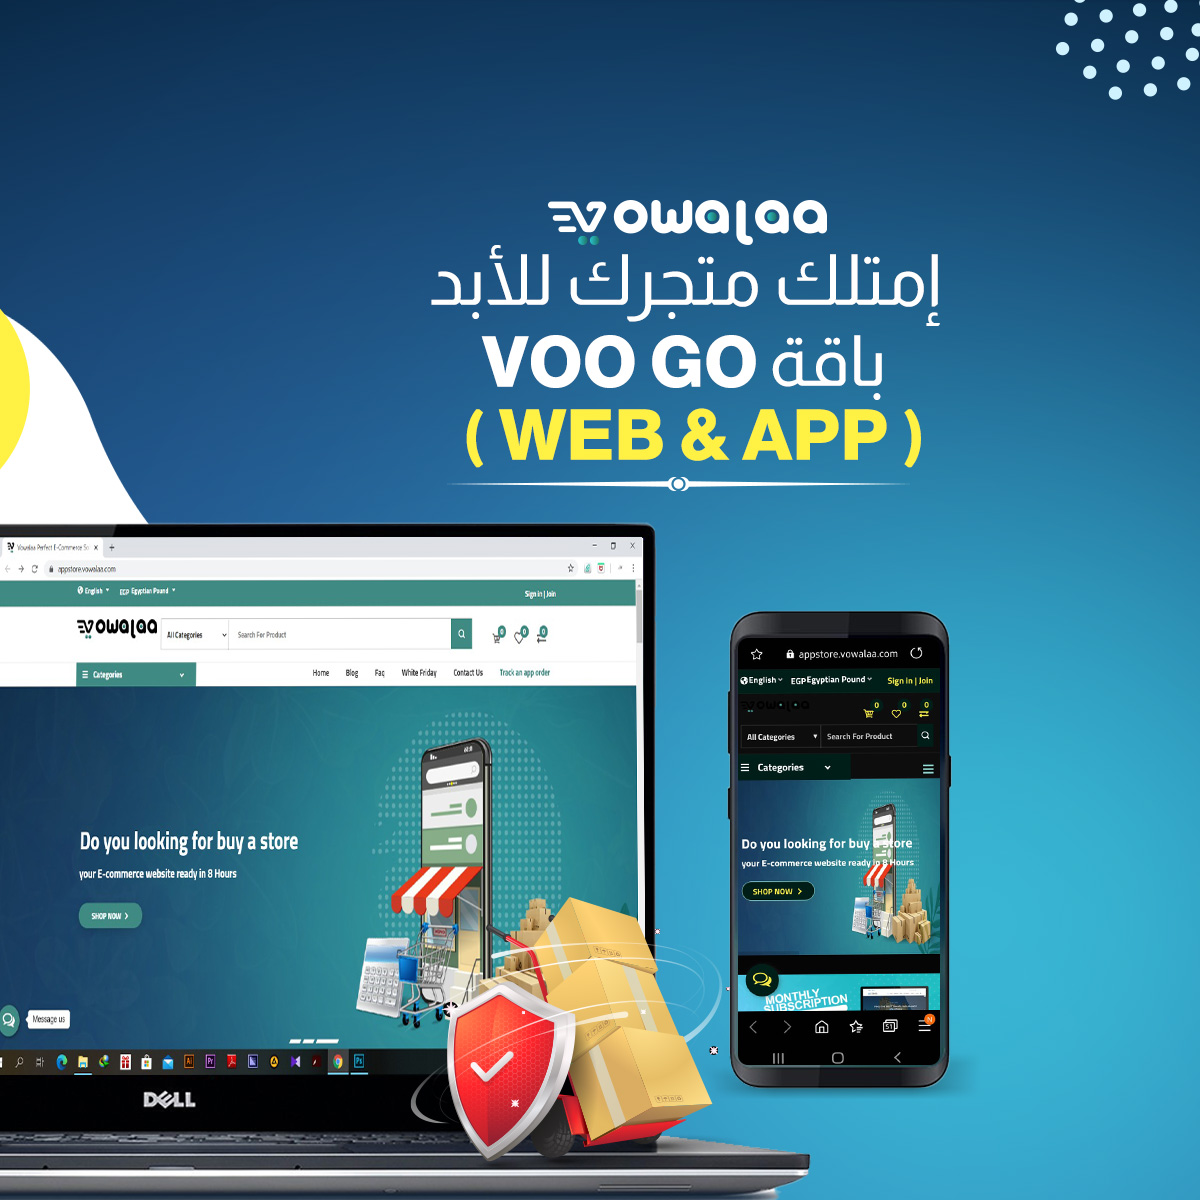 offer of the new VOO GO package-عرض باقة VOO GO الجديدة